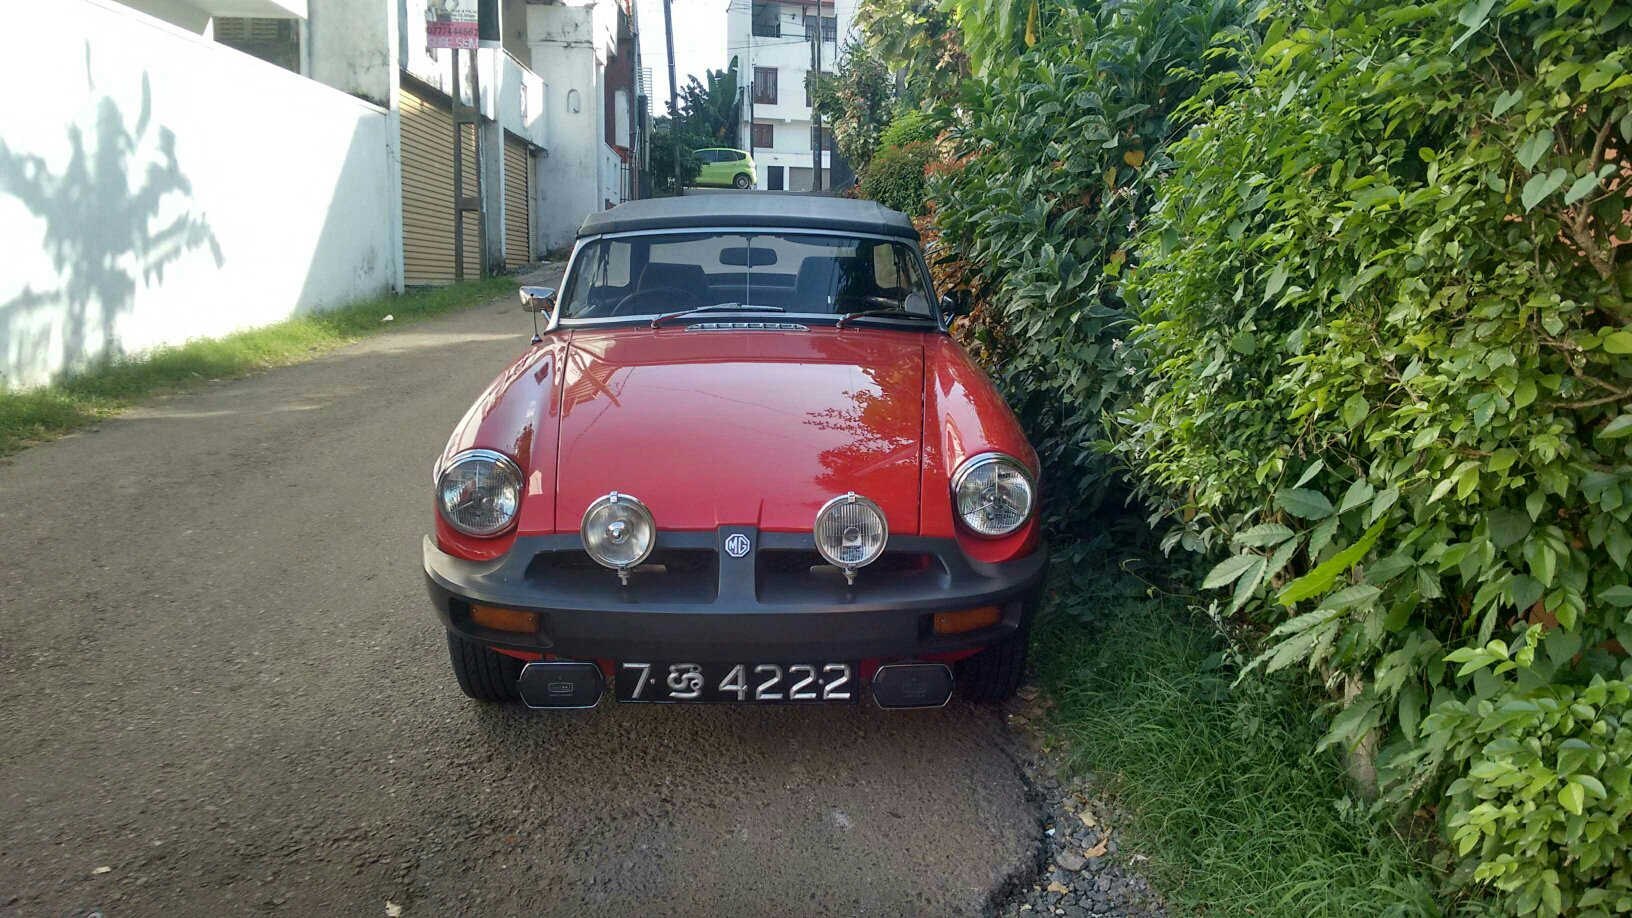 Guess Who Spotted This Mg In Sri Lanka